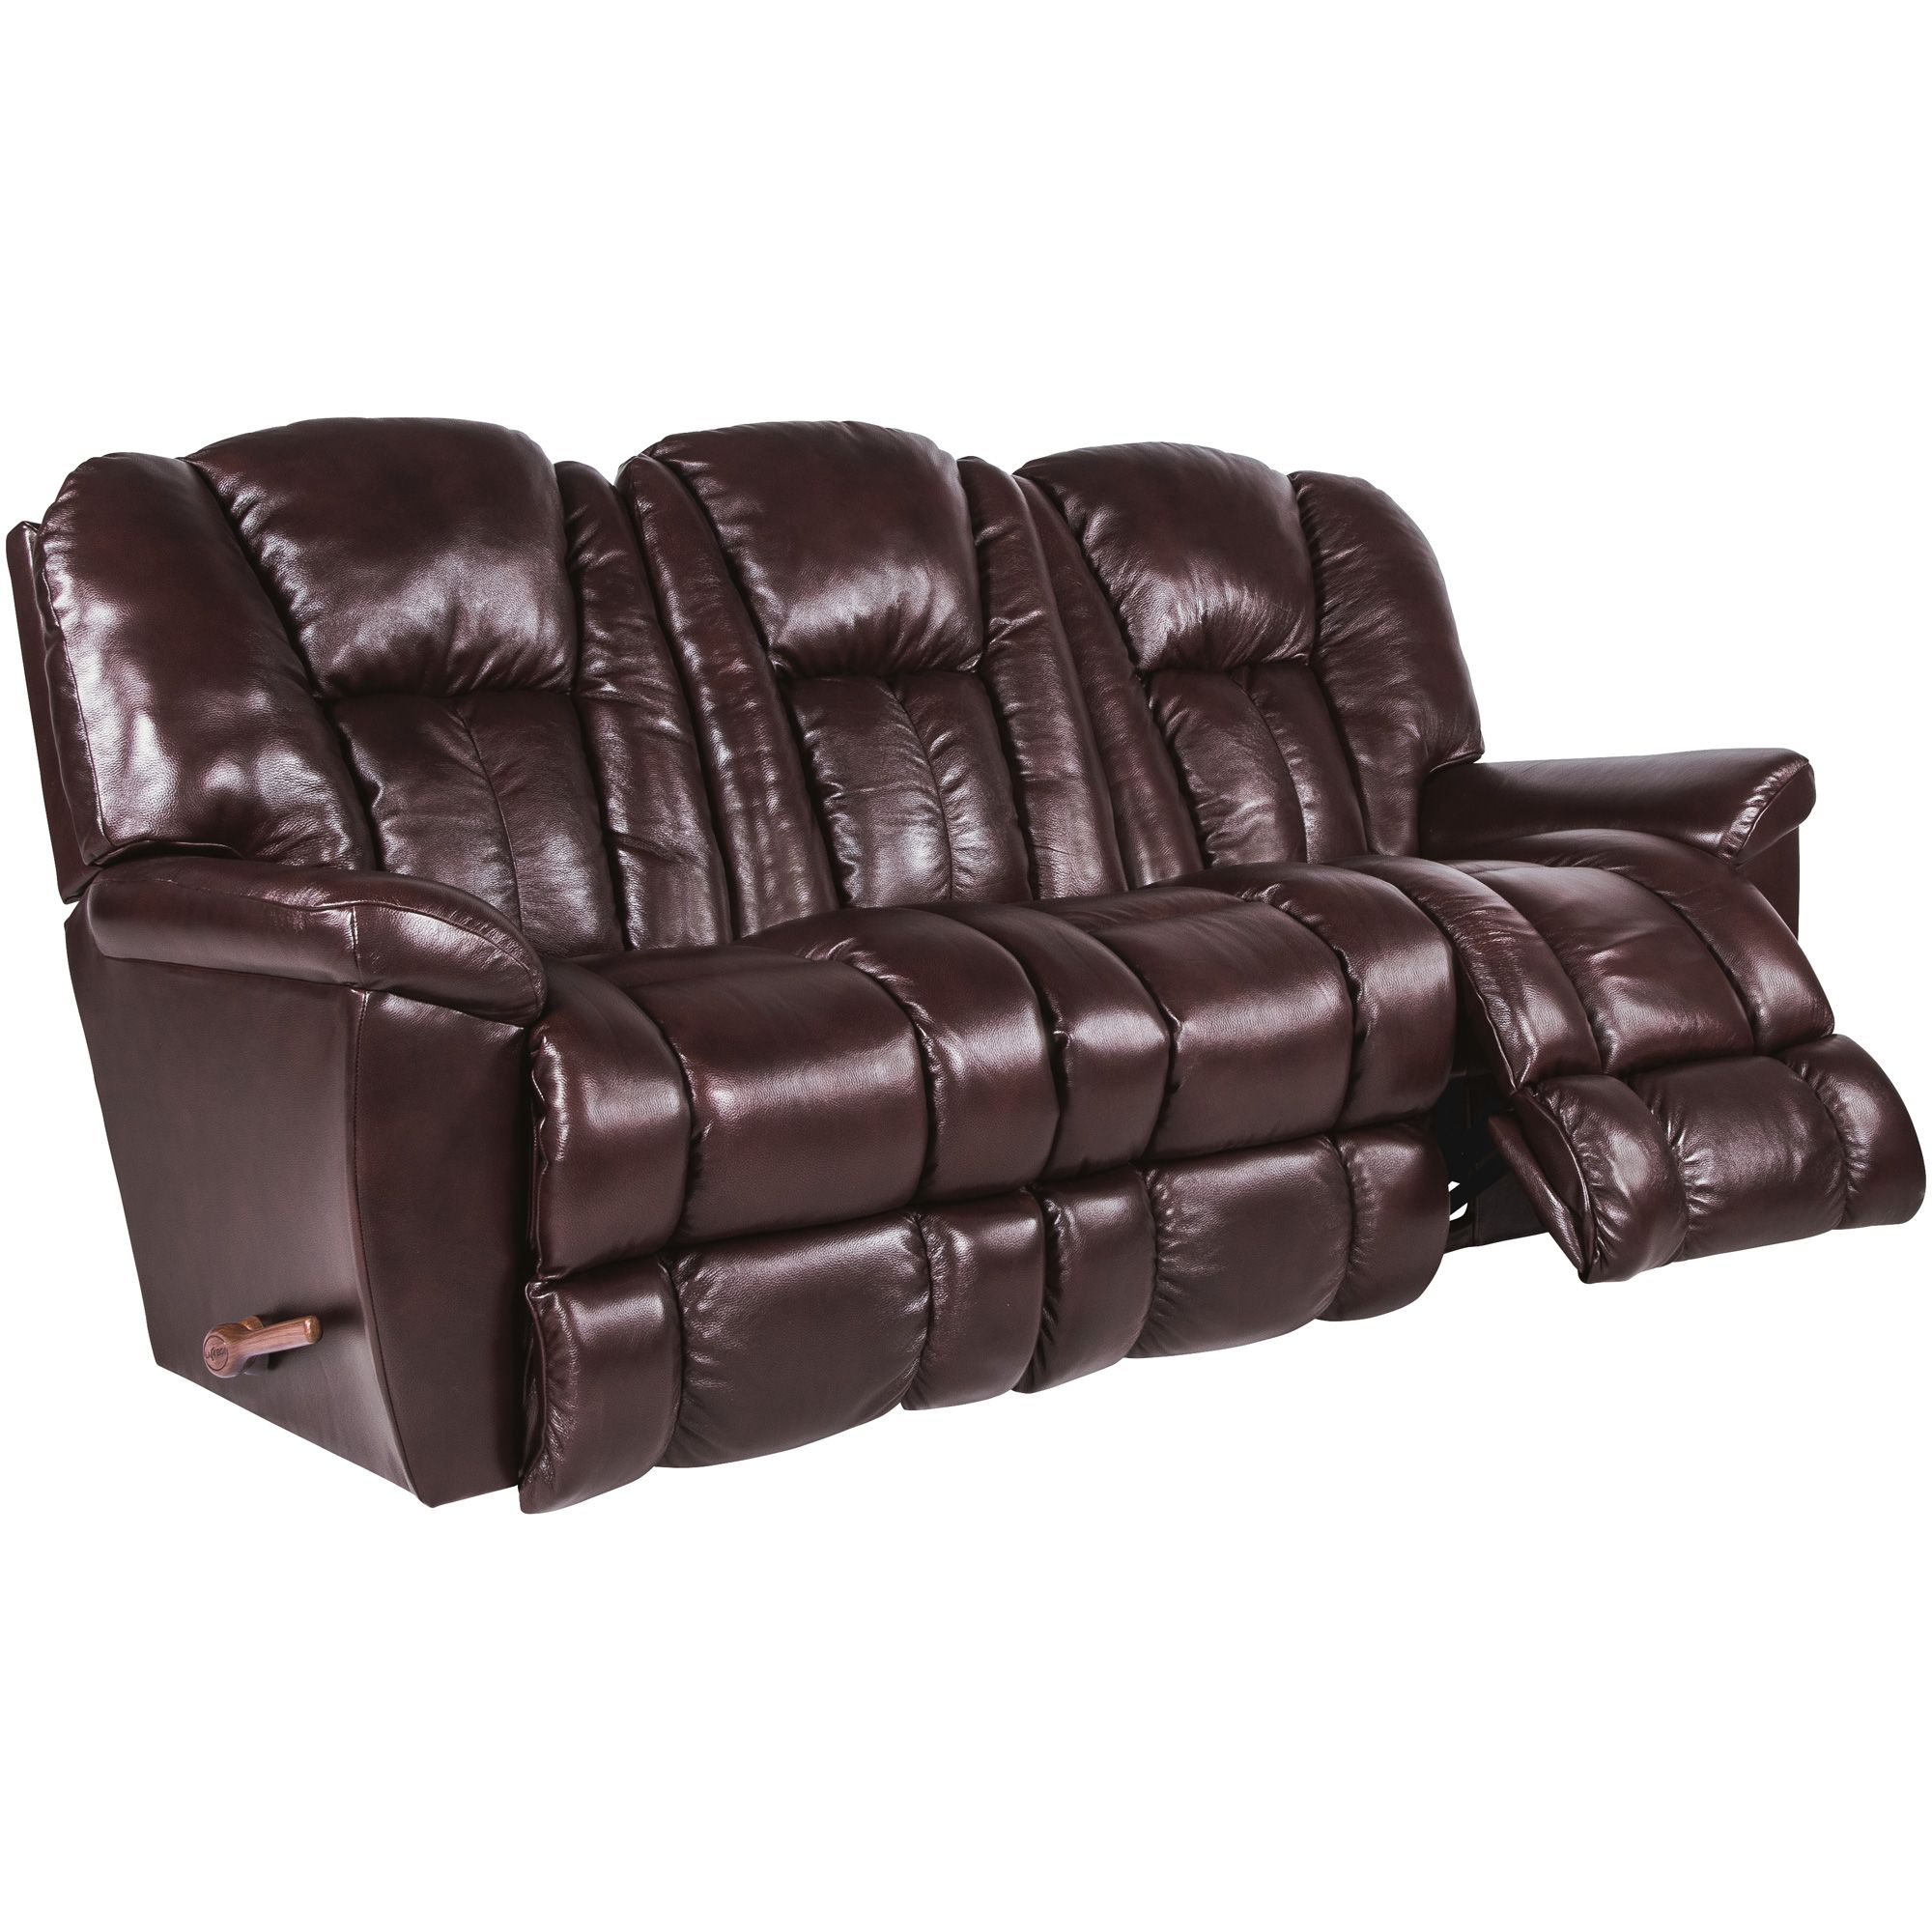 Maverick Burgundy Reclining Sofa Reclining Sofa Recliner Power